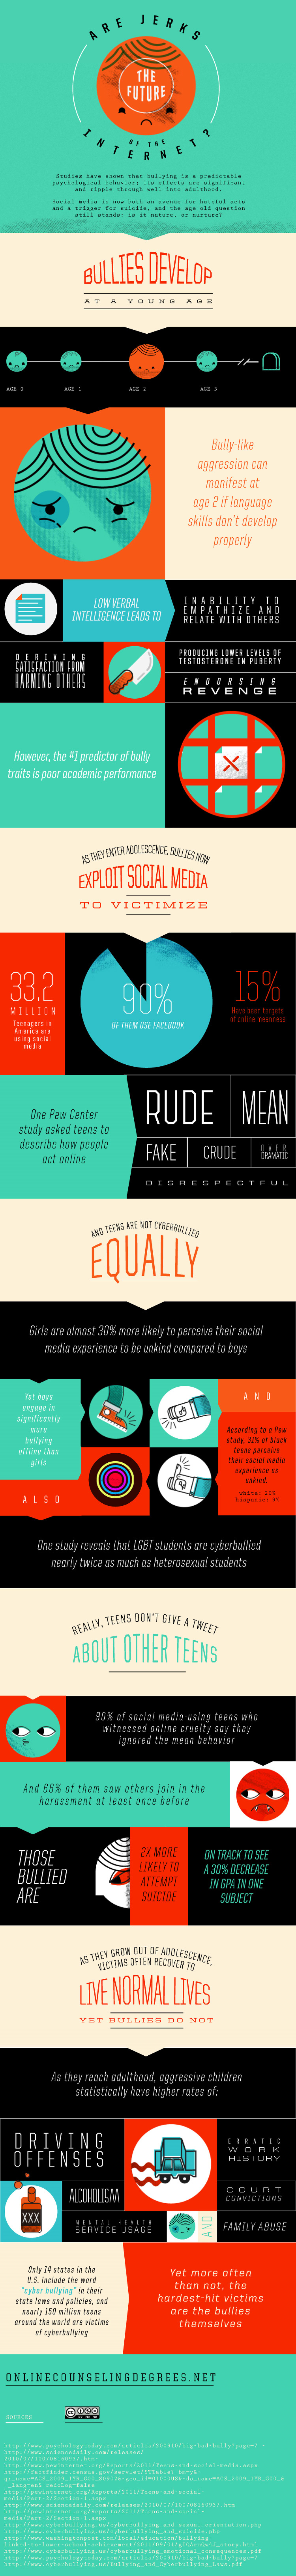 Are Jerks the Future of the Internet? Infographic